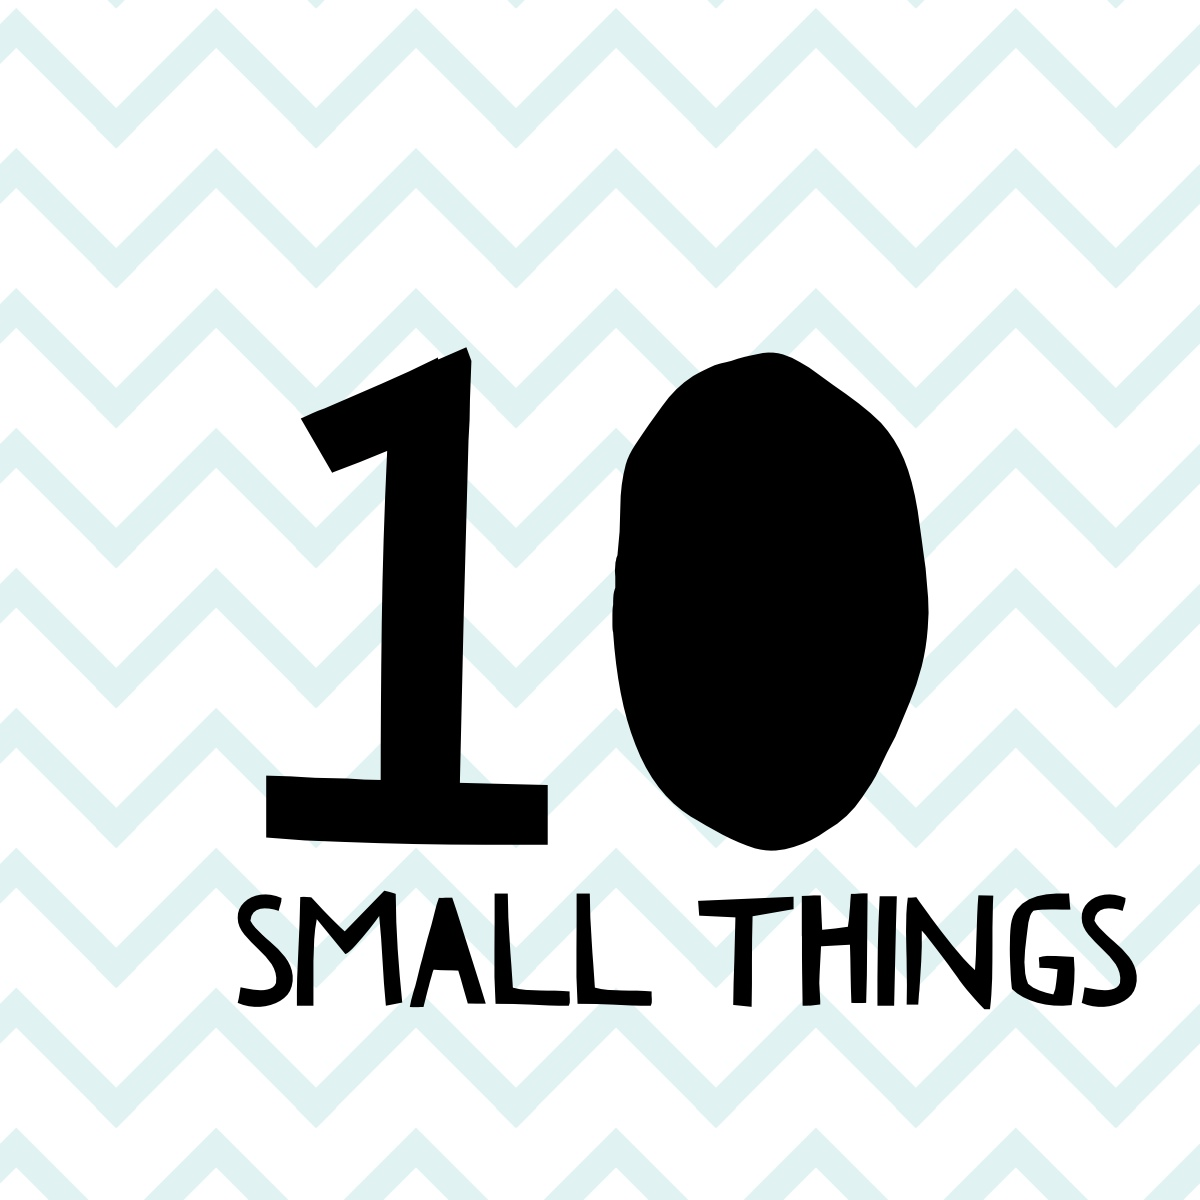 10 Small Things That Make My Day